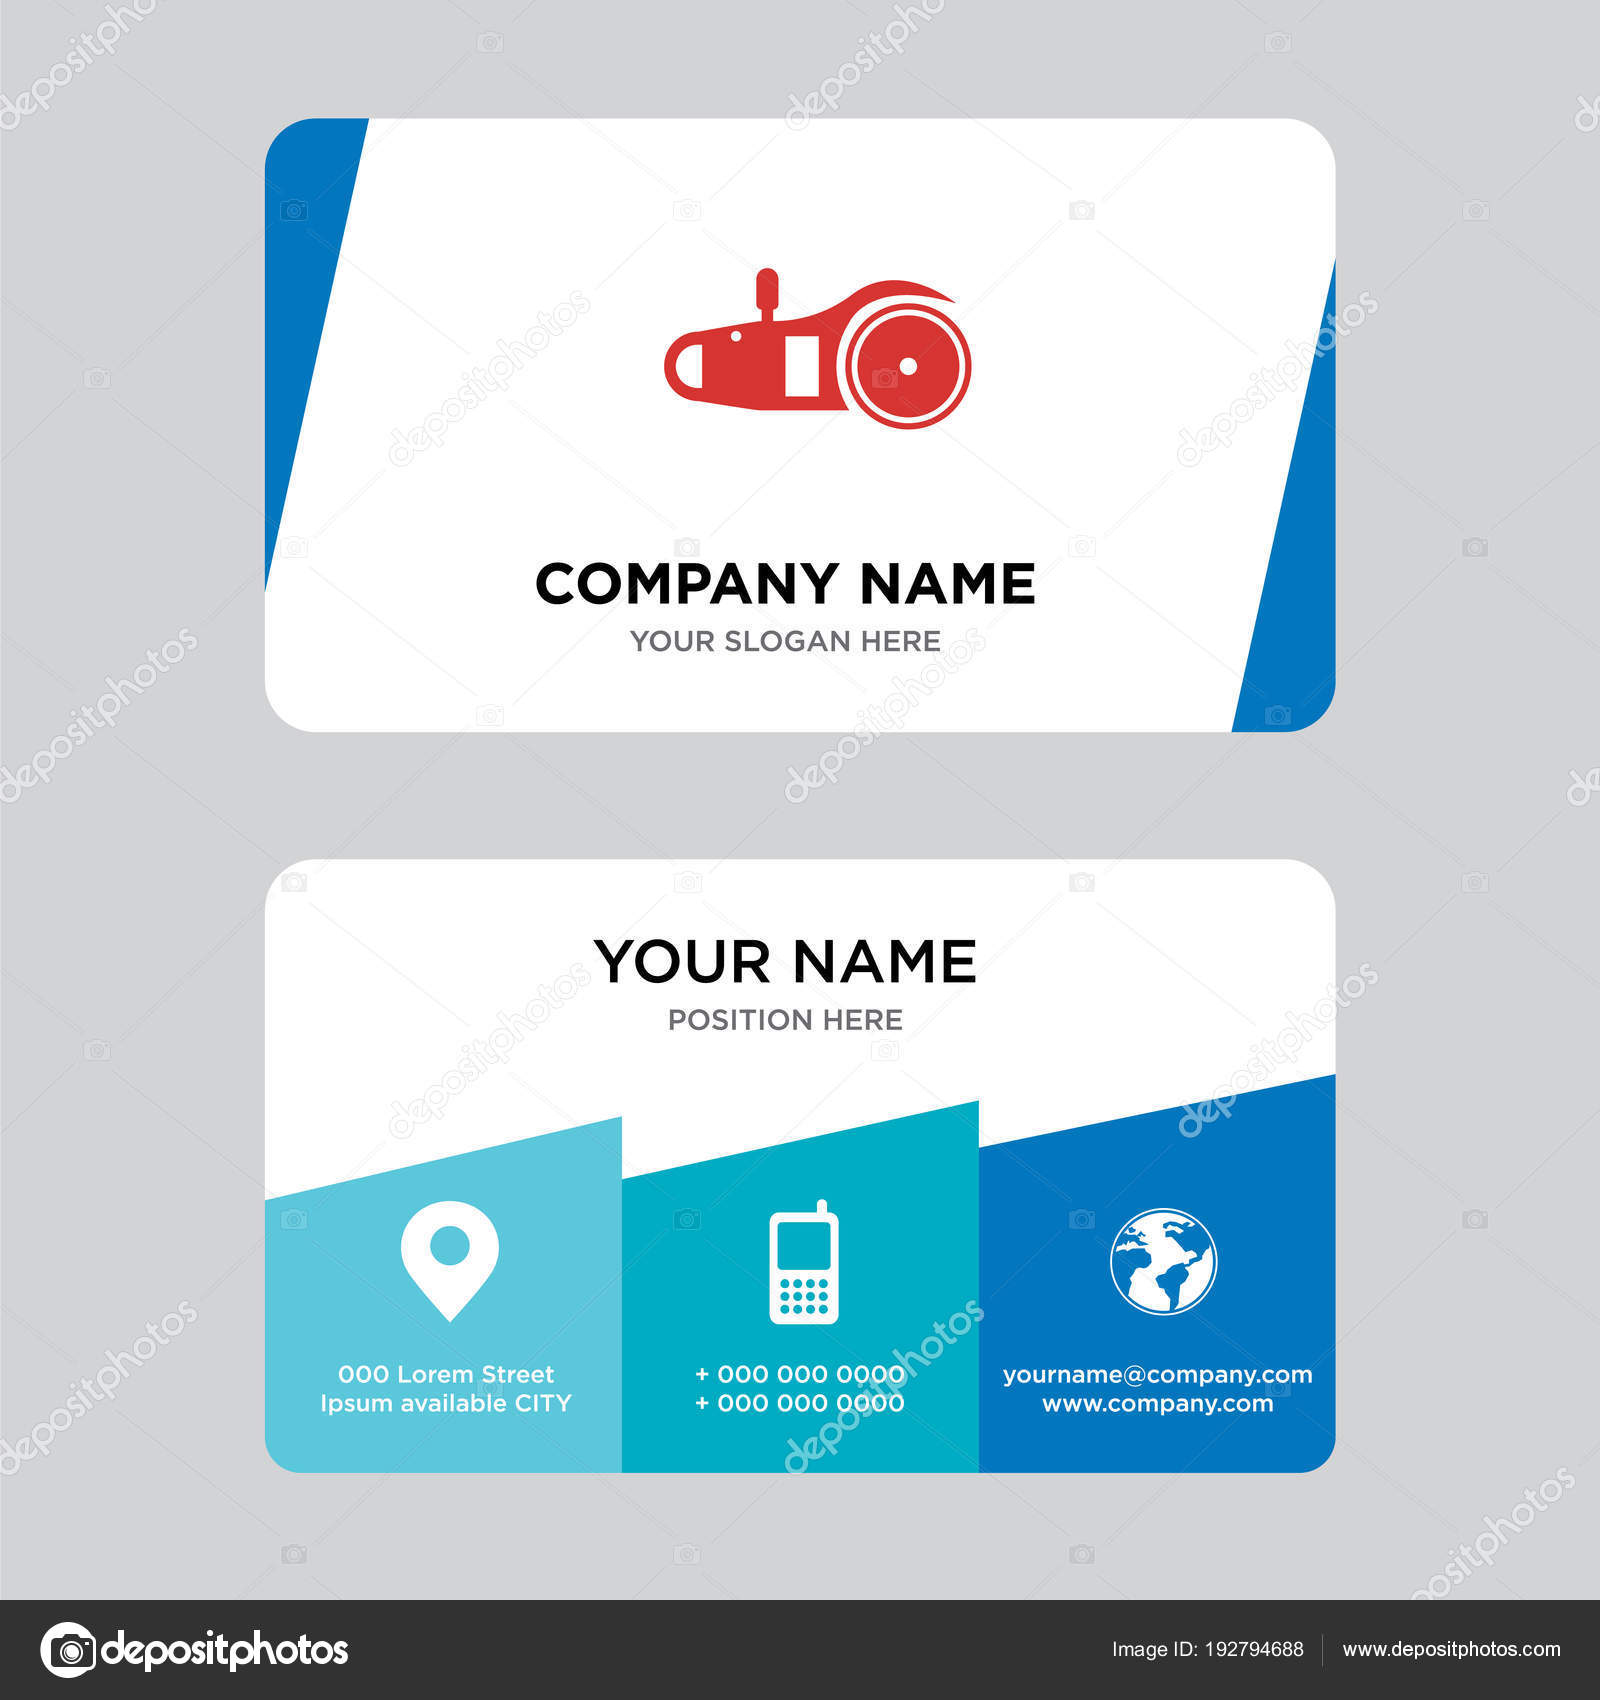 electric saw business card design template — Stock Vector ...